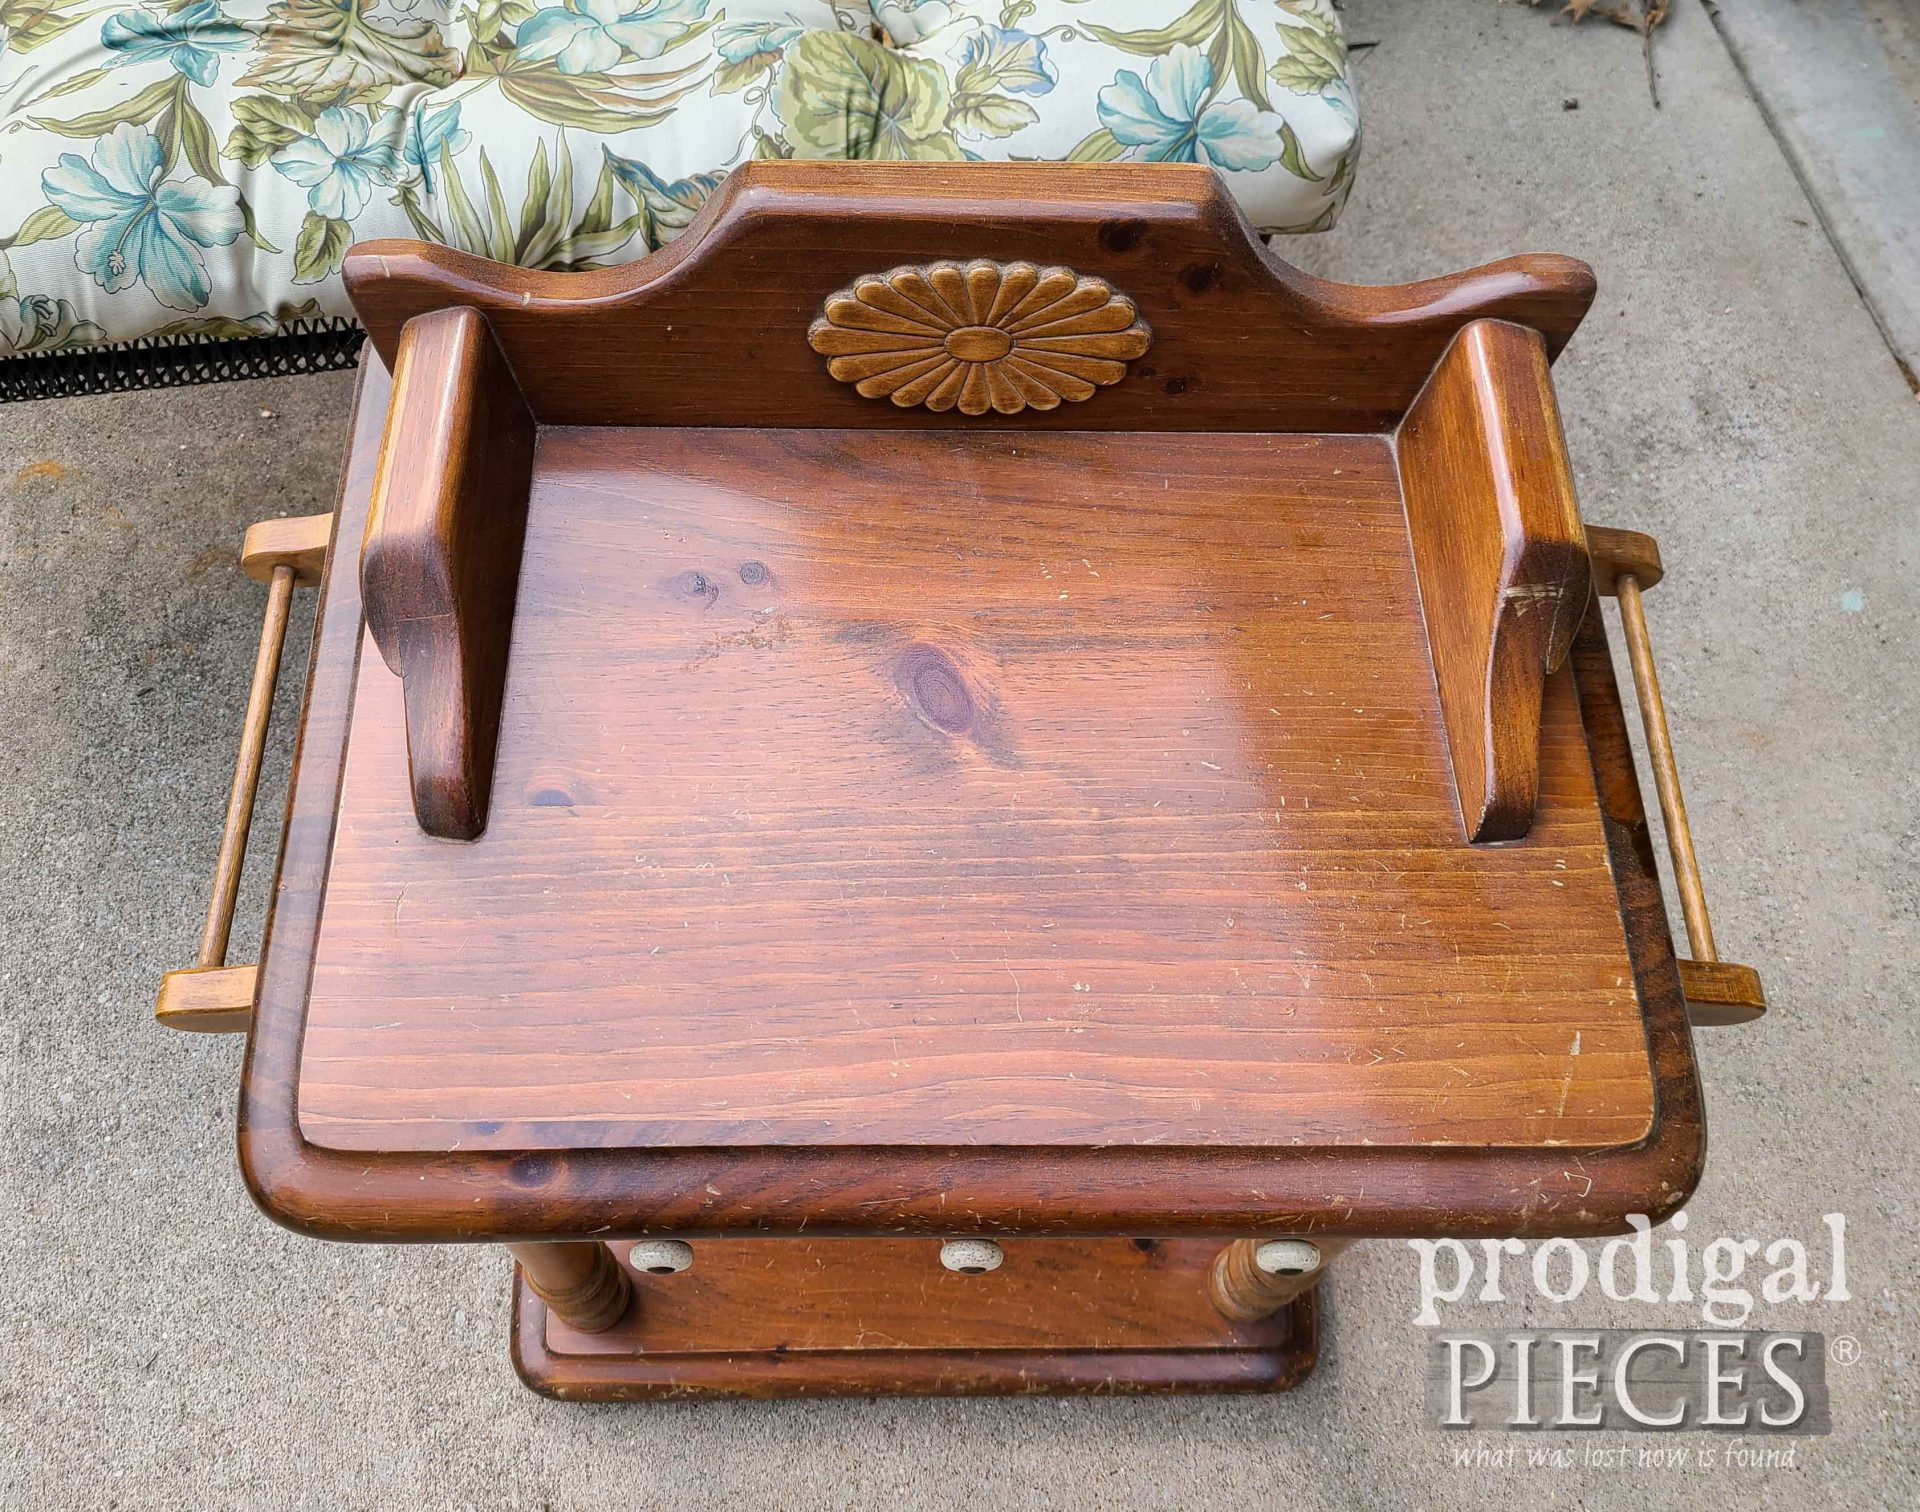 Vintage Wash Stand Top Before | prodigalpieces.com